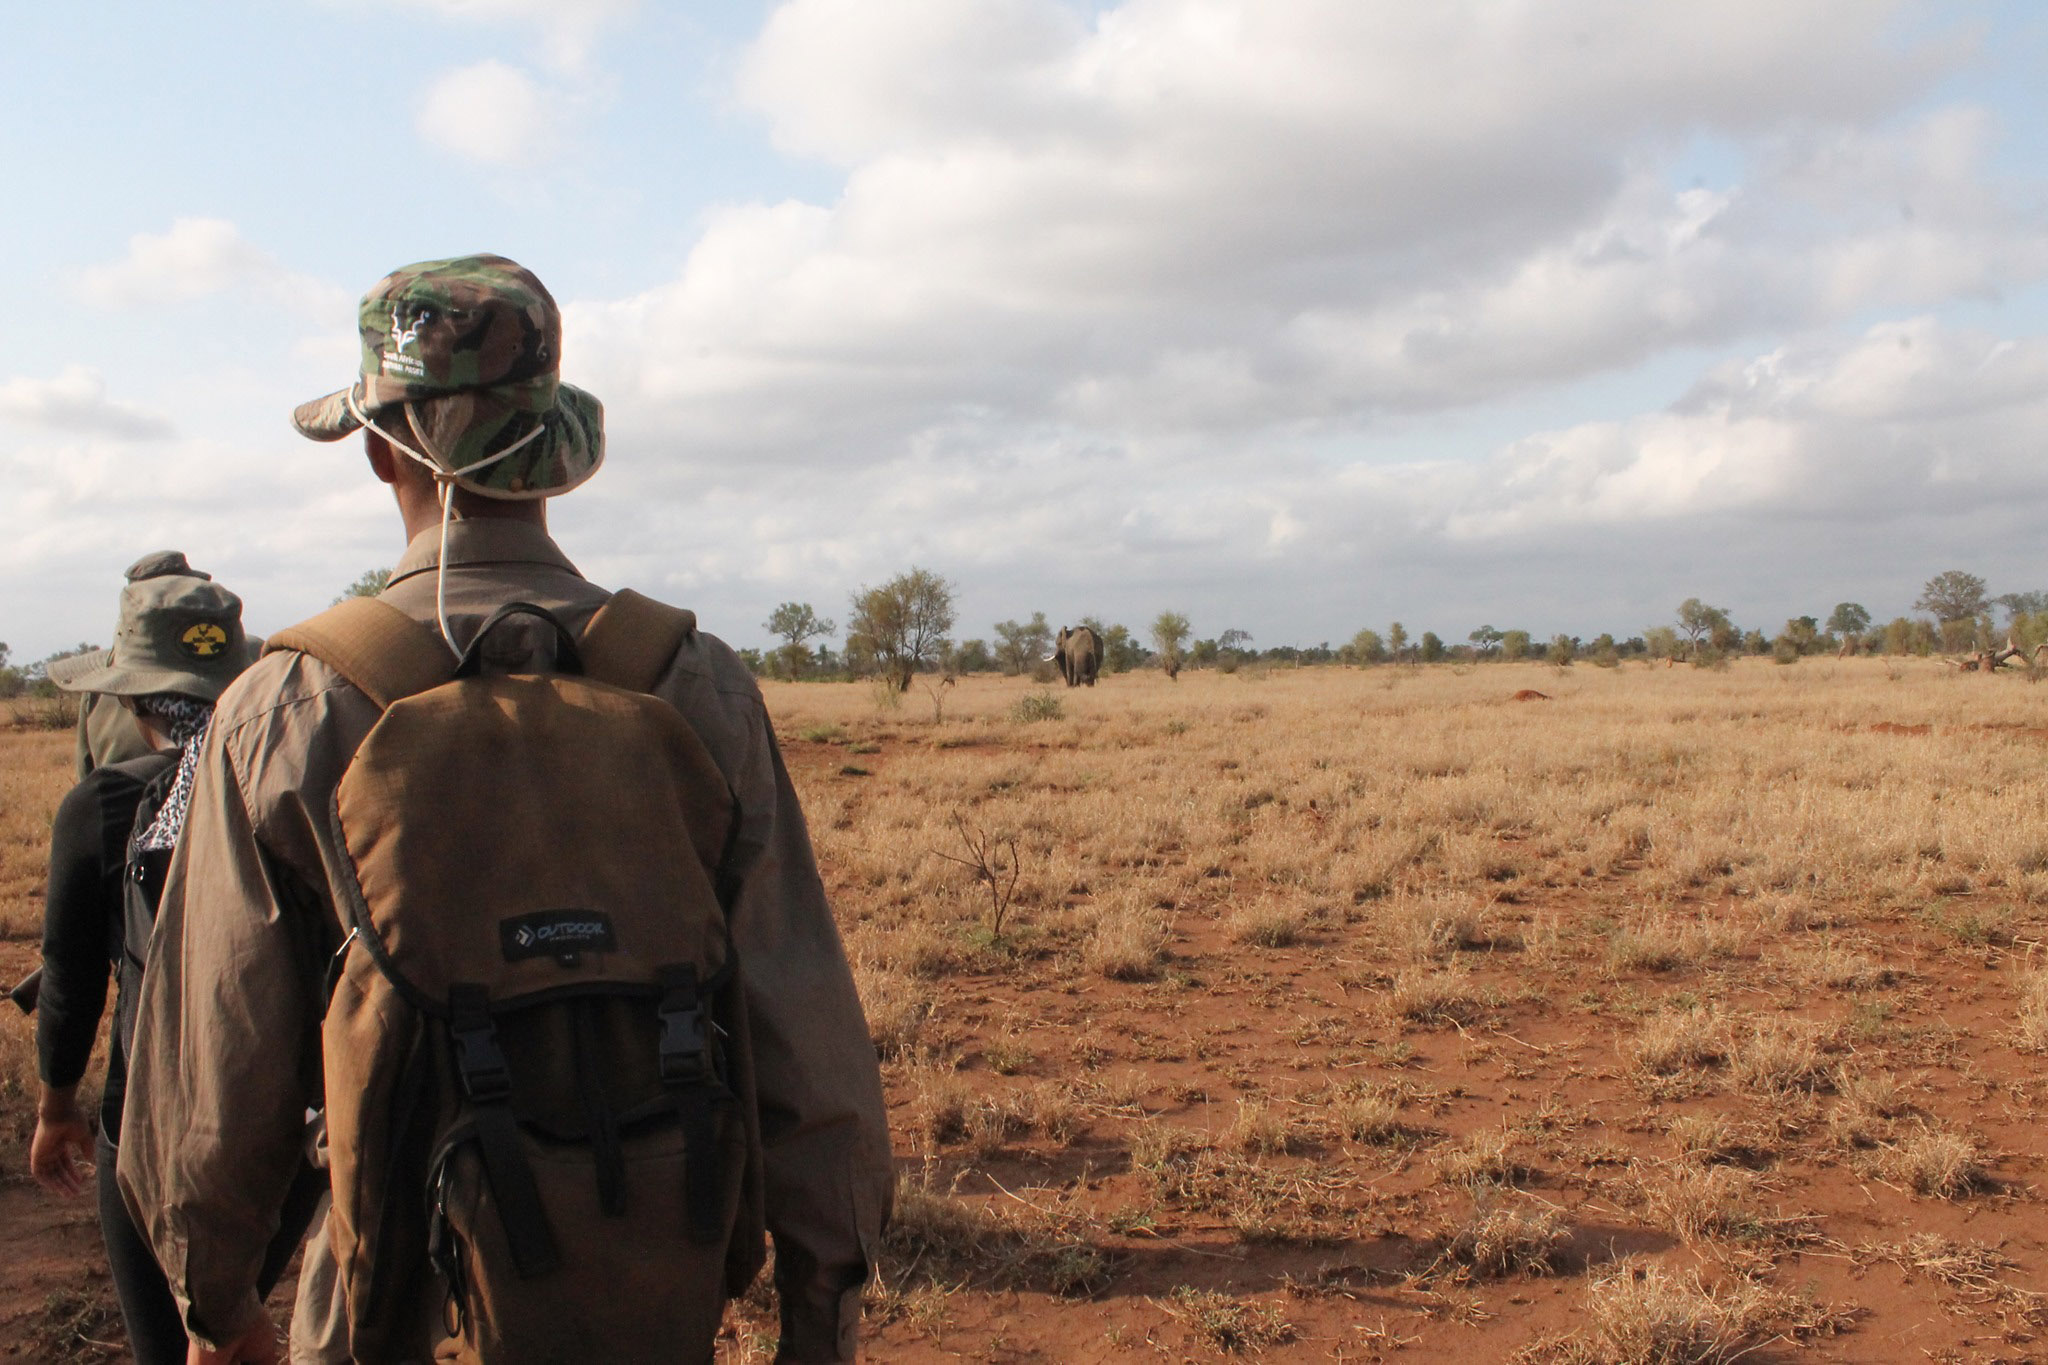 Rangers celebrated at the 10th annual Rhino Conservation Awards